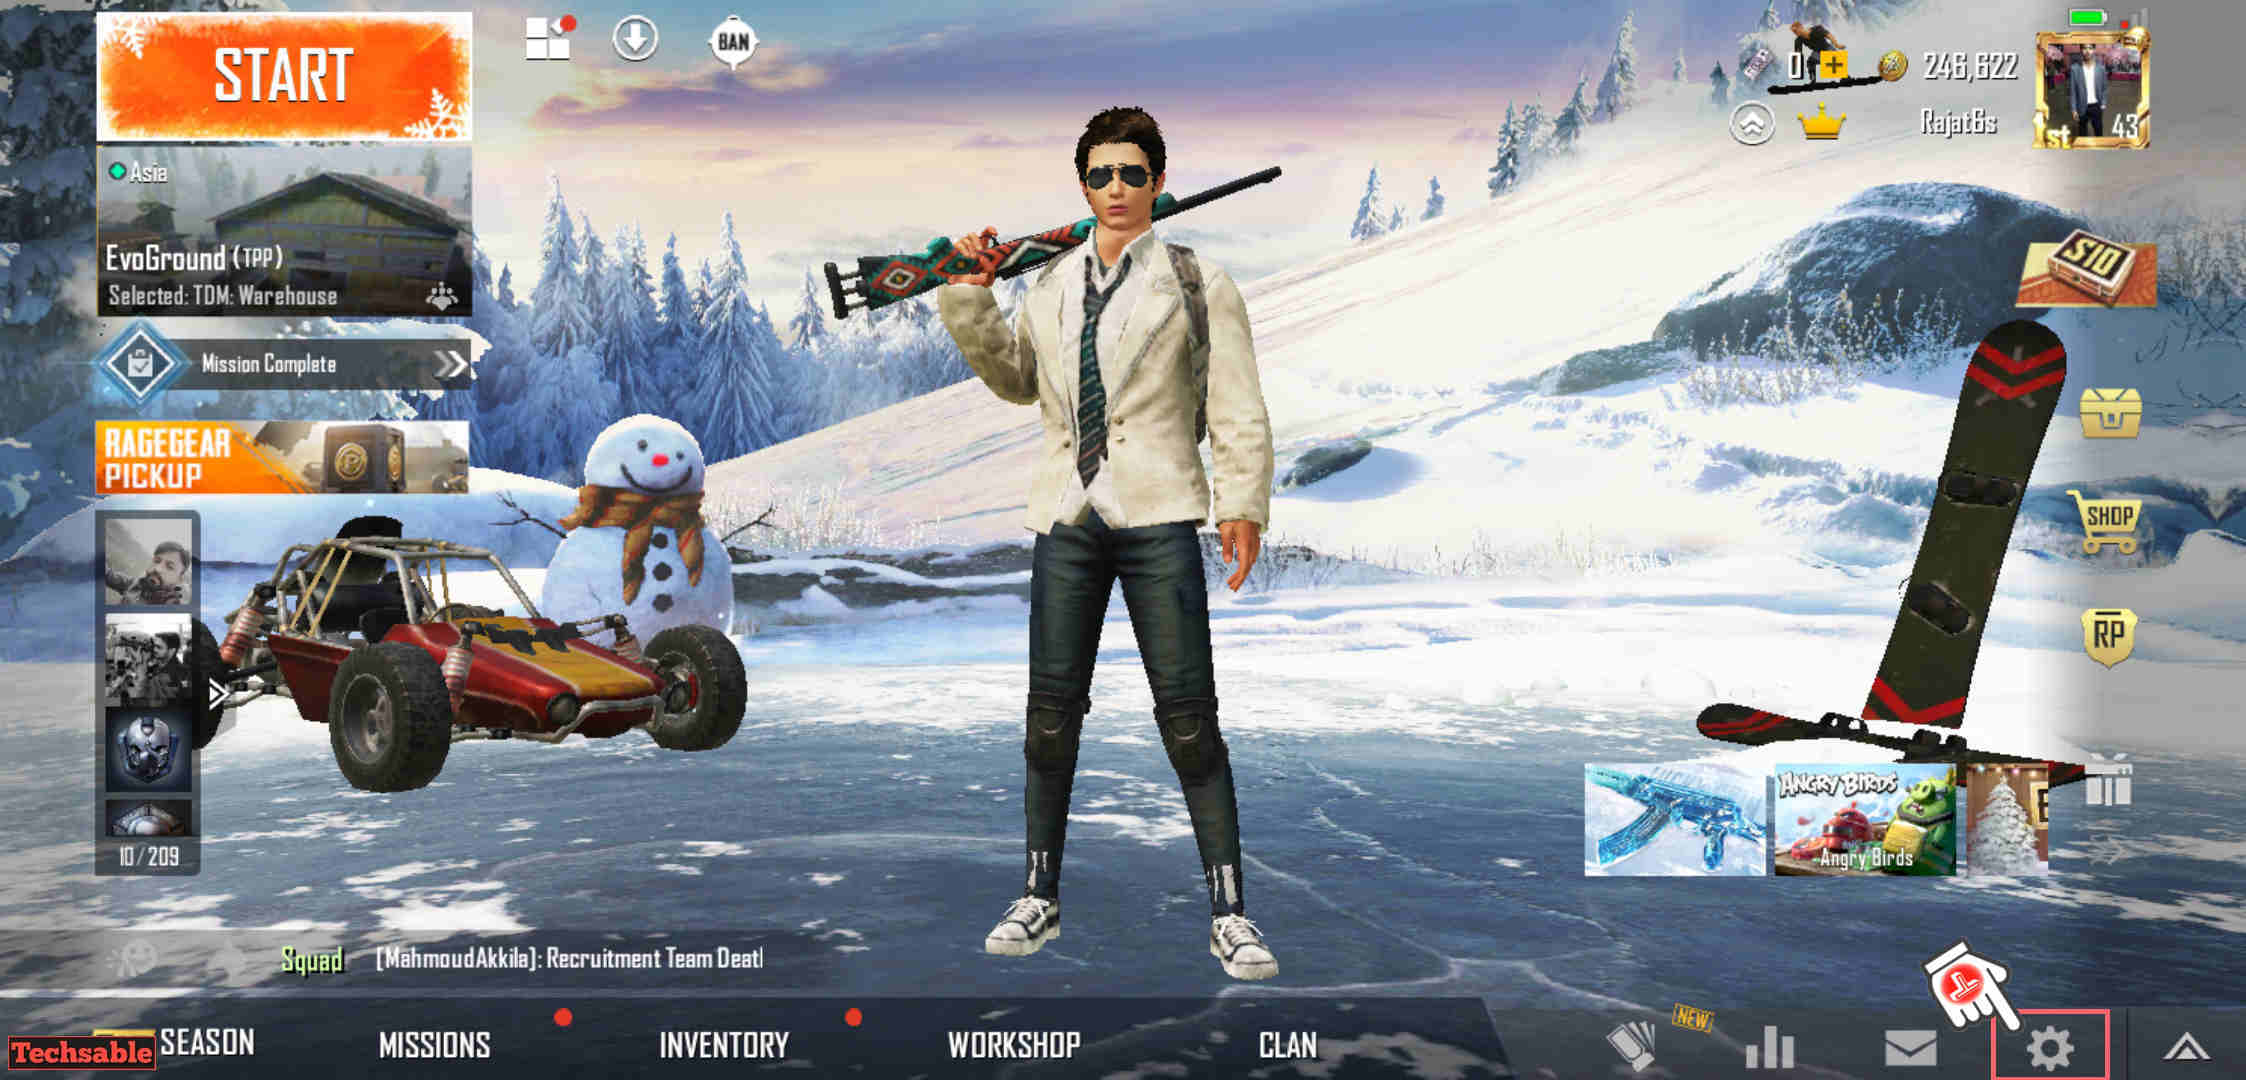 4 Finger Claw PUBG Setup: How to Shift from Thumb to 4 Finger Claw on PUBG Mobile